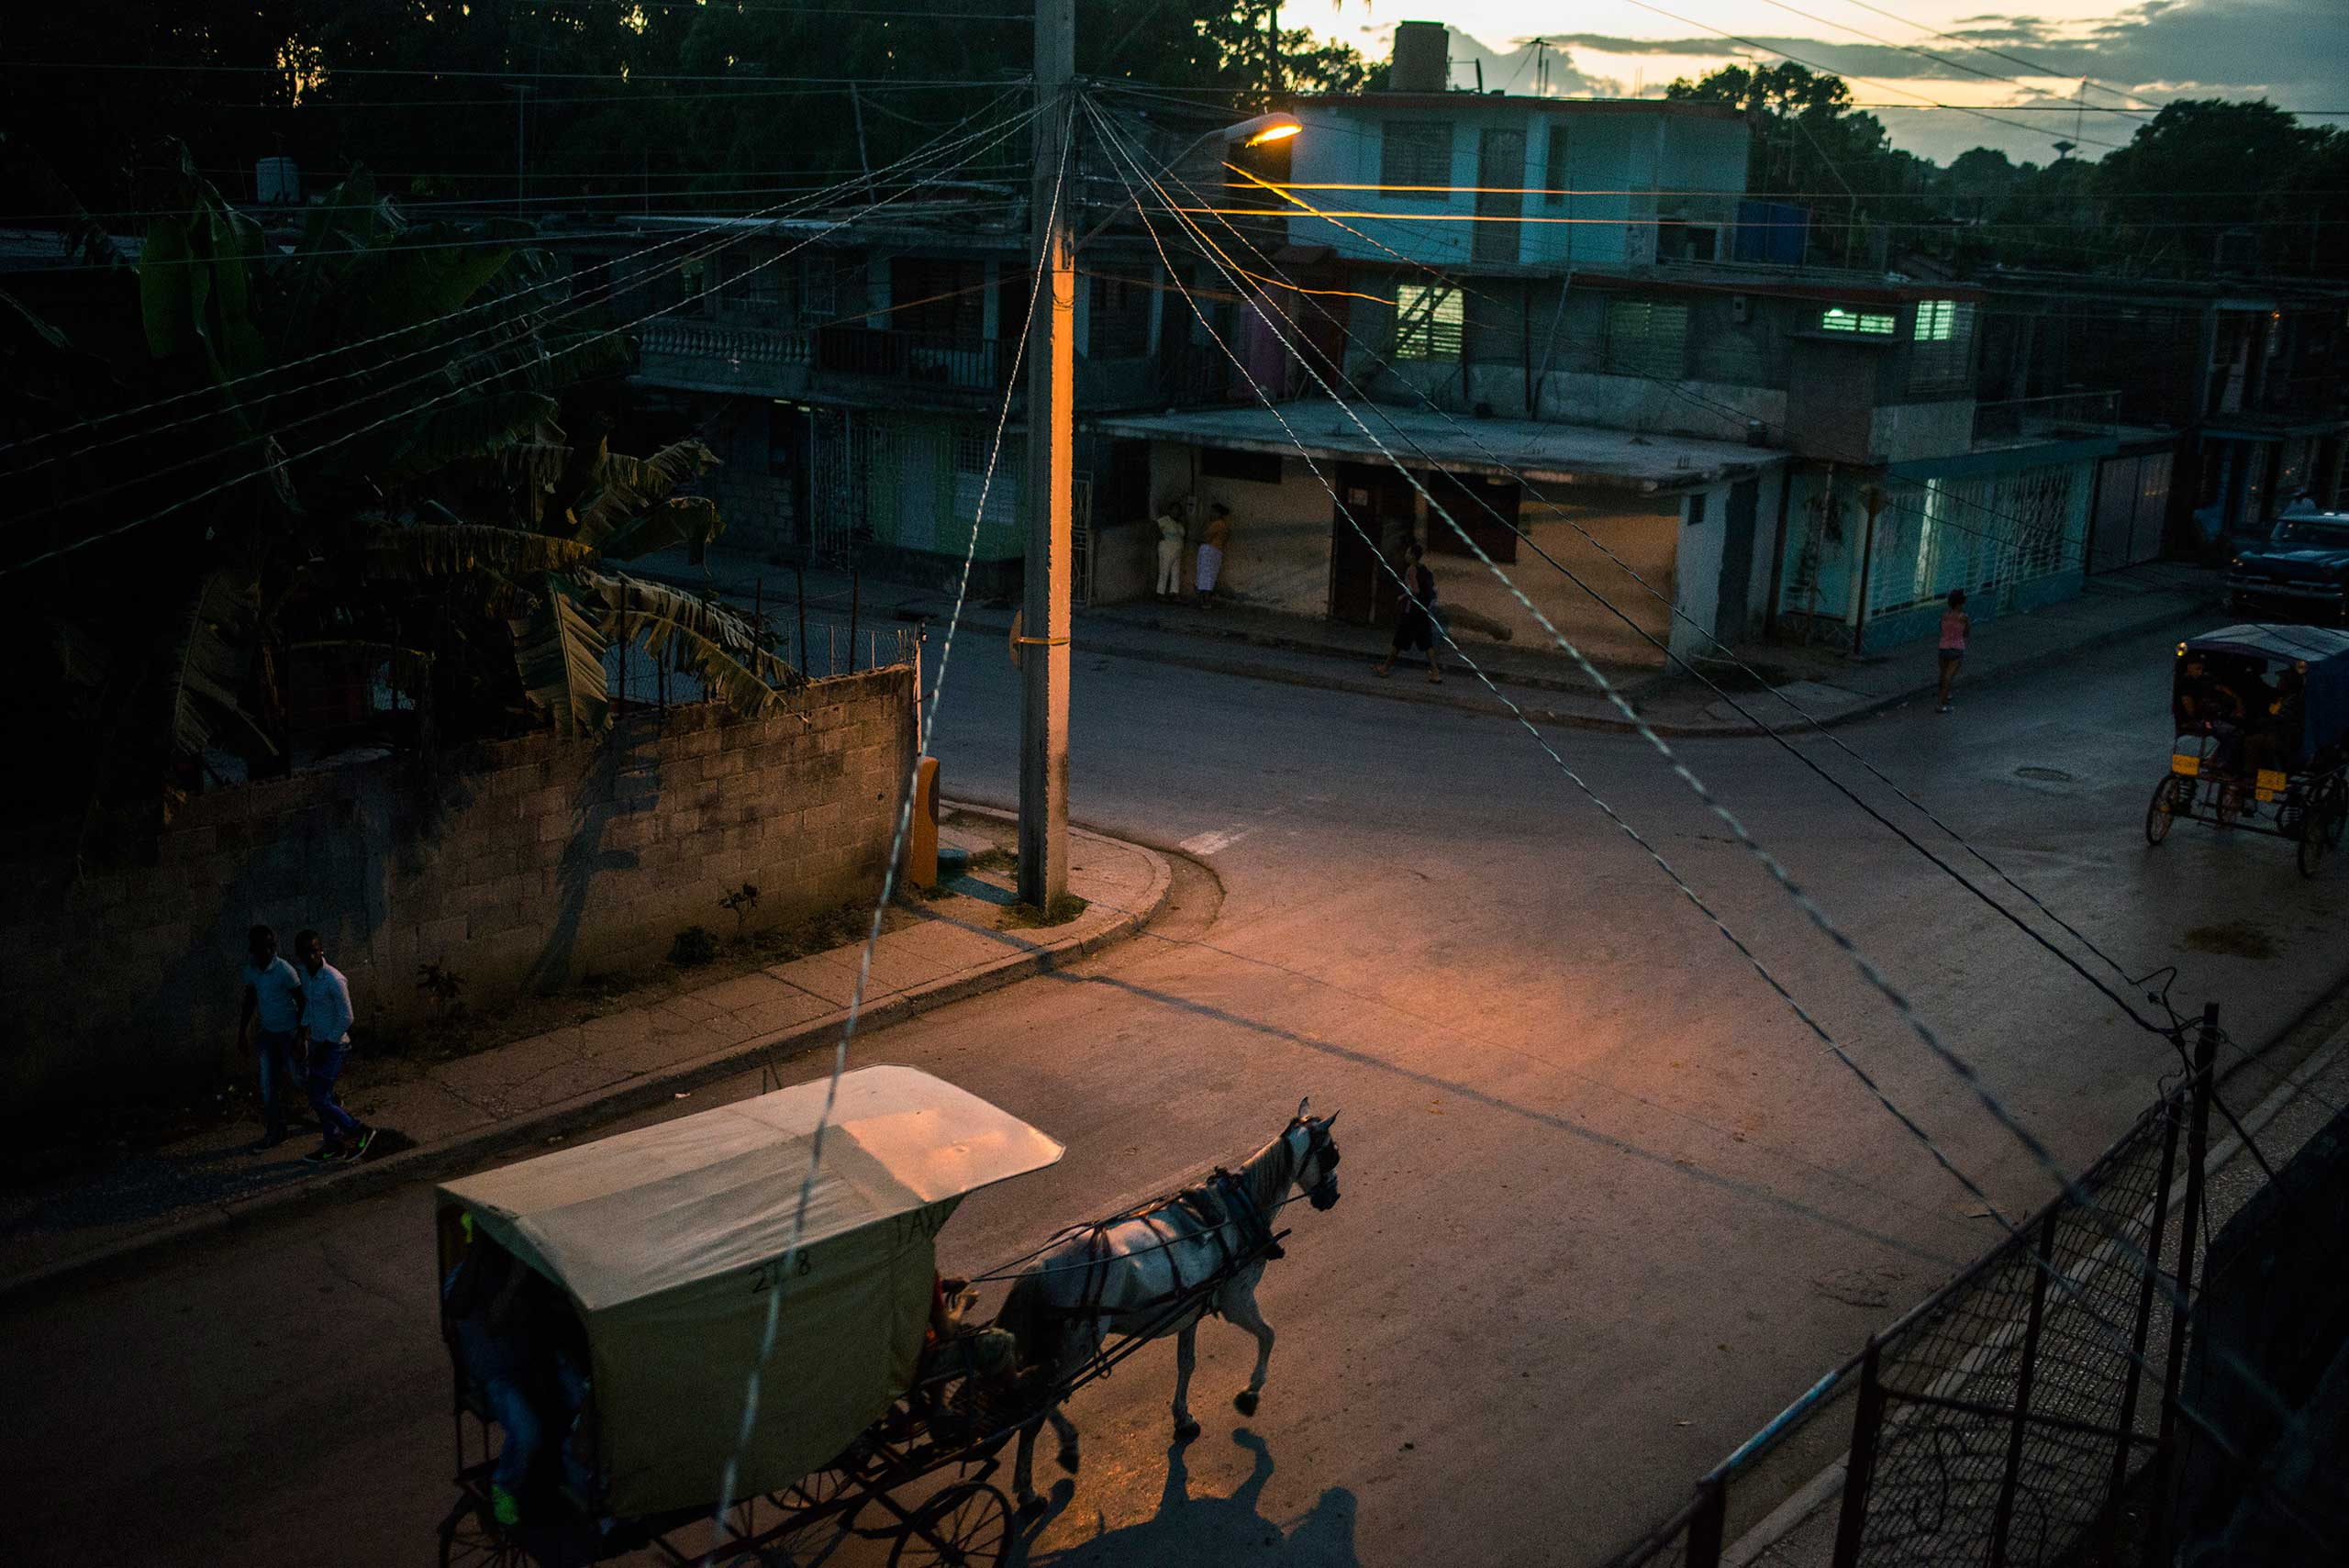 The New York Times: Revealing a Slowly Changing CubaA horse-drawn carriage -- the main form of transportation locally -- navigates the streets of Guantanamo, Cuba, near the island's eastern end, Jan. 1, 2015.